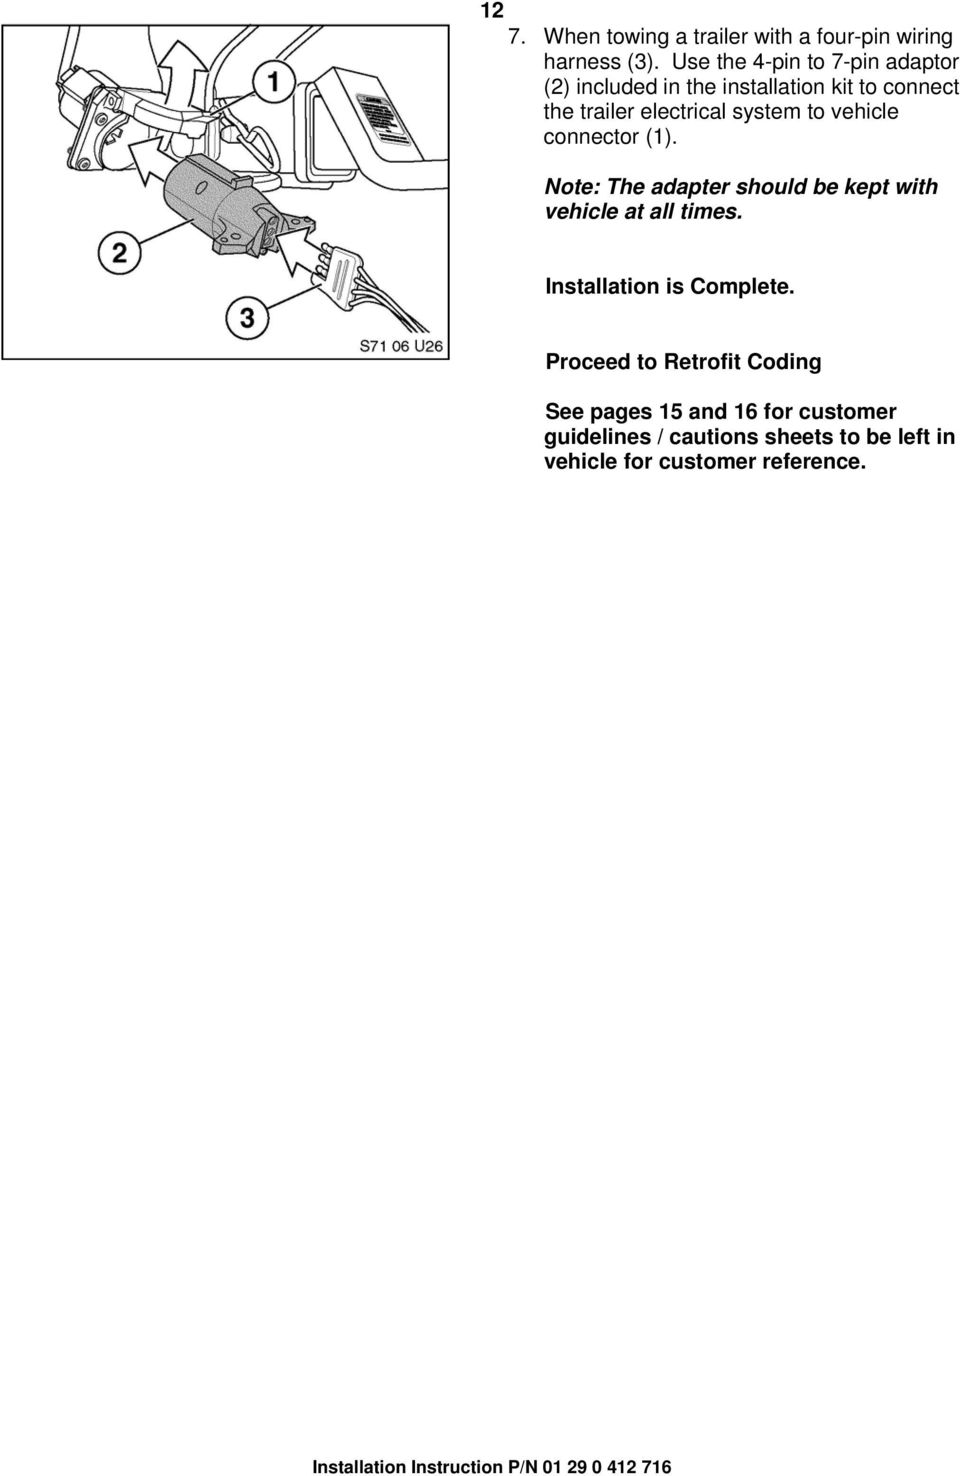 Installation Instructions Pdf 4pin 7 Pin Wiring Harness System To Vehicle Connector 1 Note The Adapter Should Be Kept With